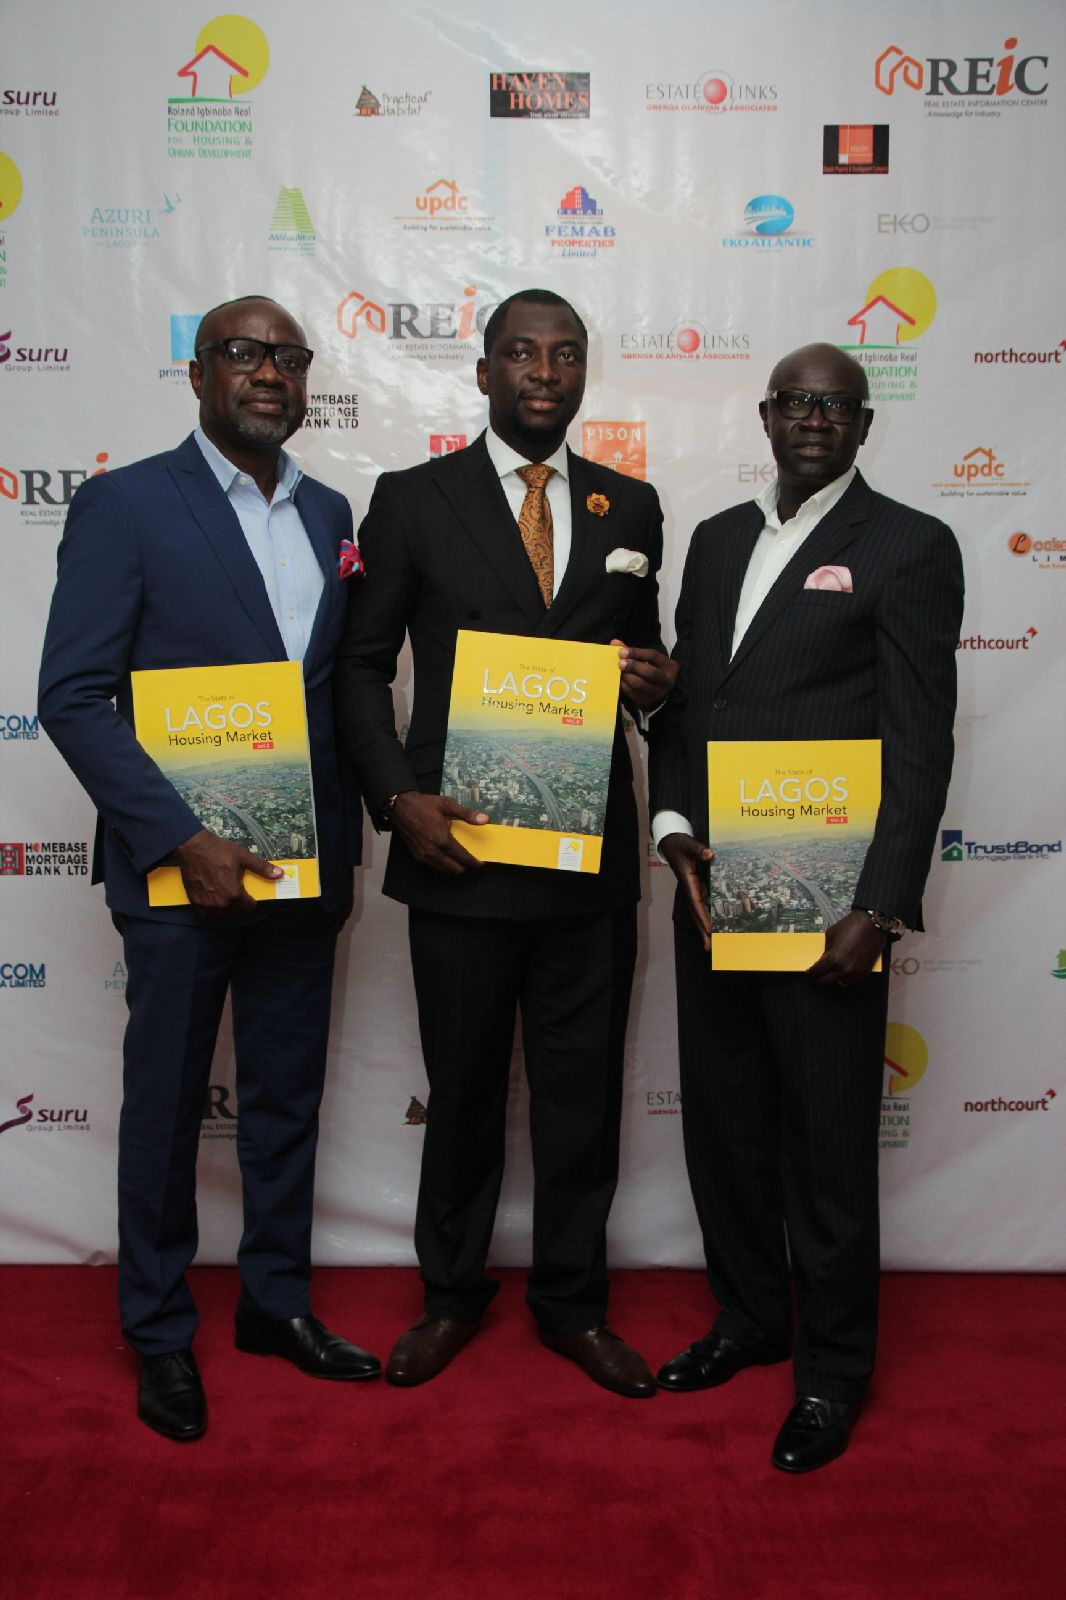 From left to right, Mr. Gbenga Olaniyan - MD/CEO, Estate Links International, Mr Roland Igbinoba, Executive Vice Chairman, (RIRFHUD) and Mr. Mustapha Njie - MD/CEO TAF Africa Homes, Nigeria/Gambia.